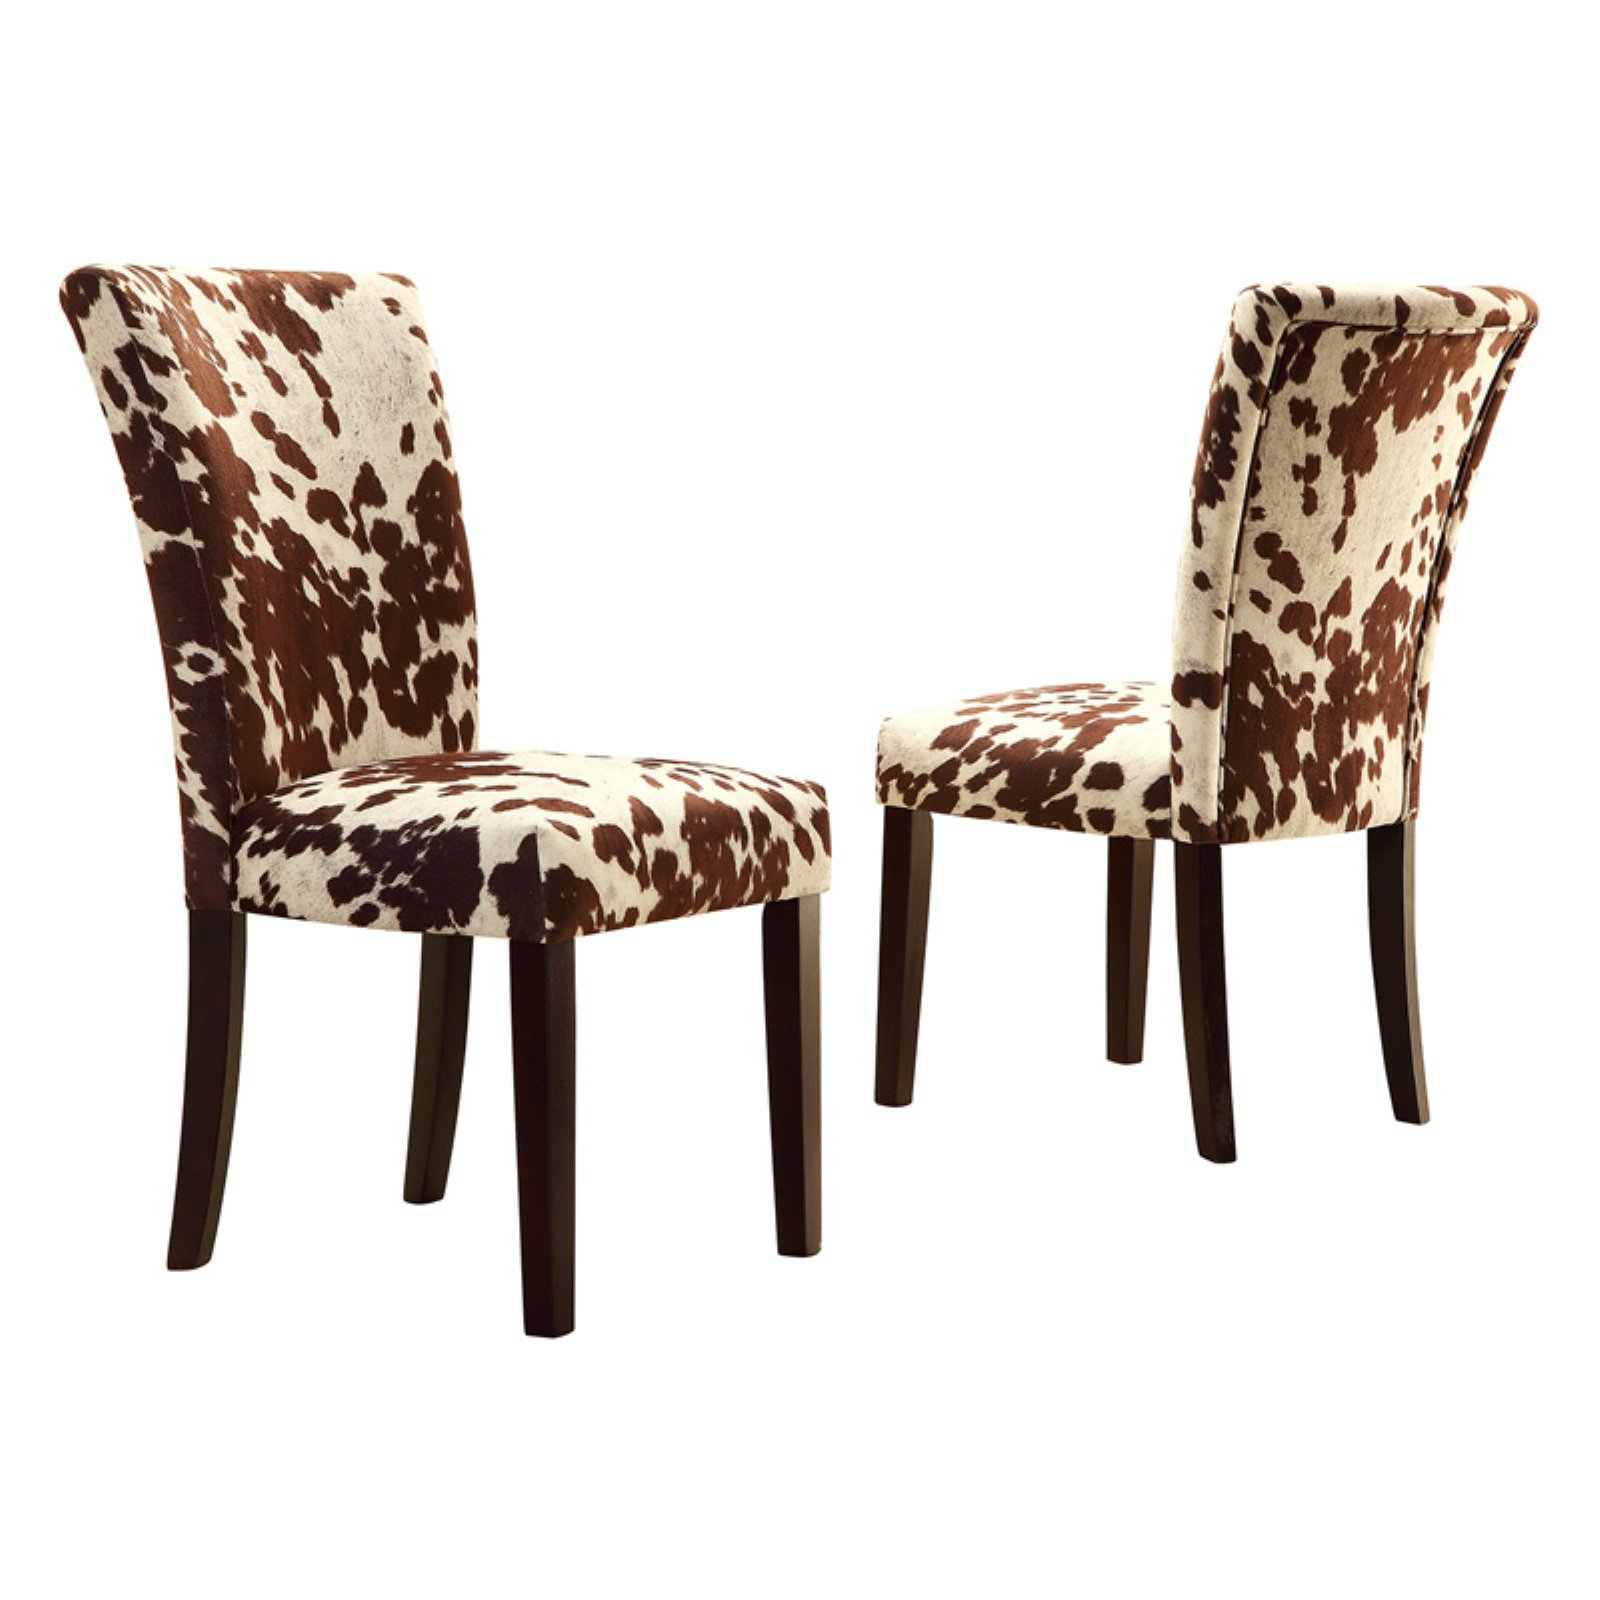 Cow Hide Chair Weston Home Royal Cow Hide Fabric Parson Chairs Espresso Set Of 2